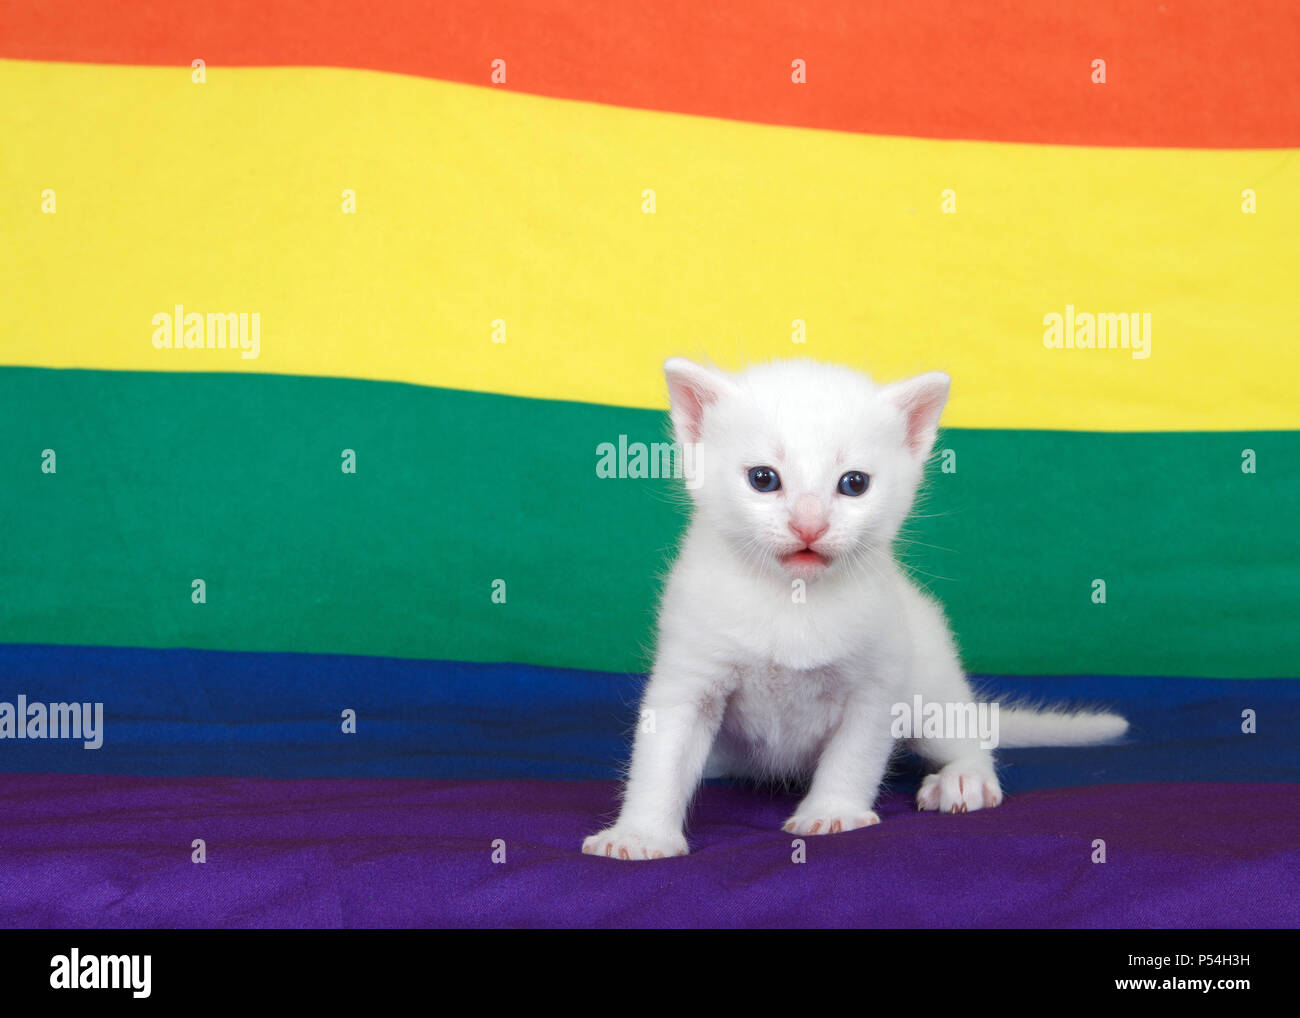 Small grey kitten with blue eyes standing on a Gay Pride flag with flag extending into the backgroun